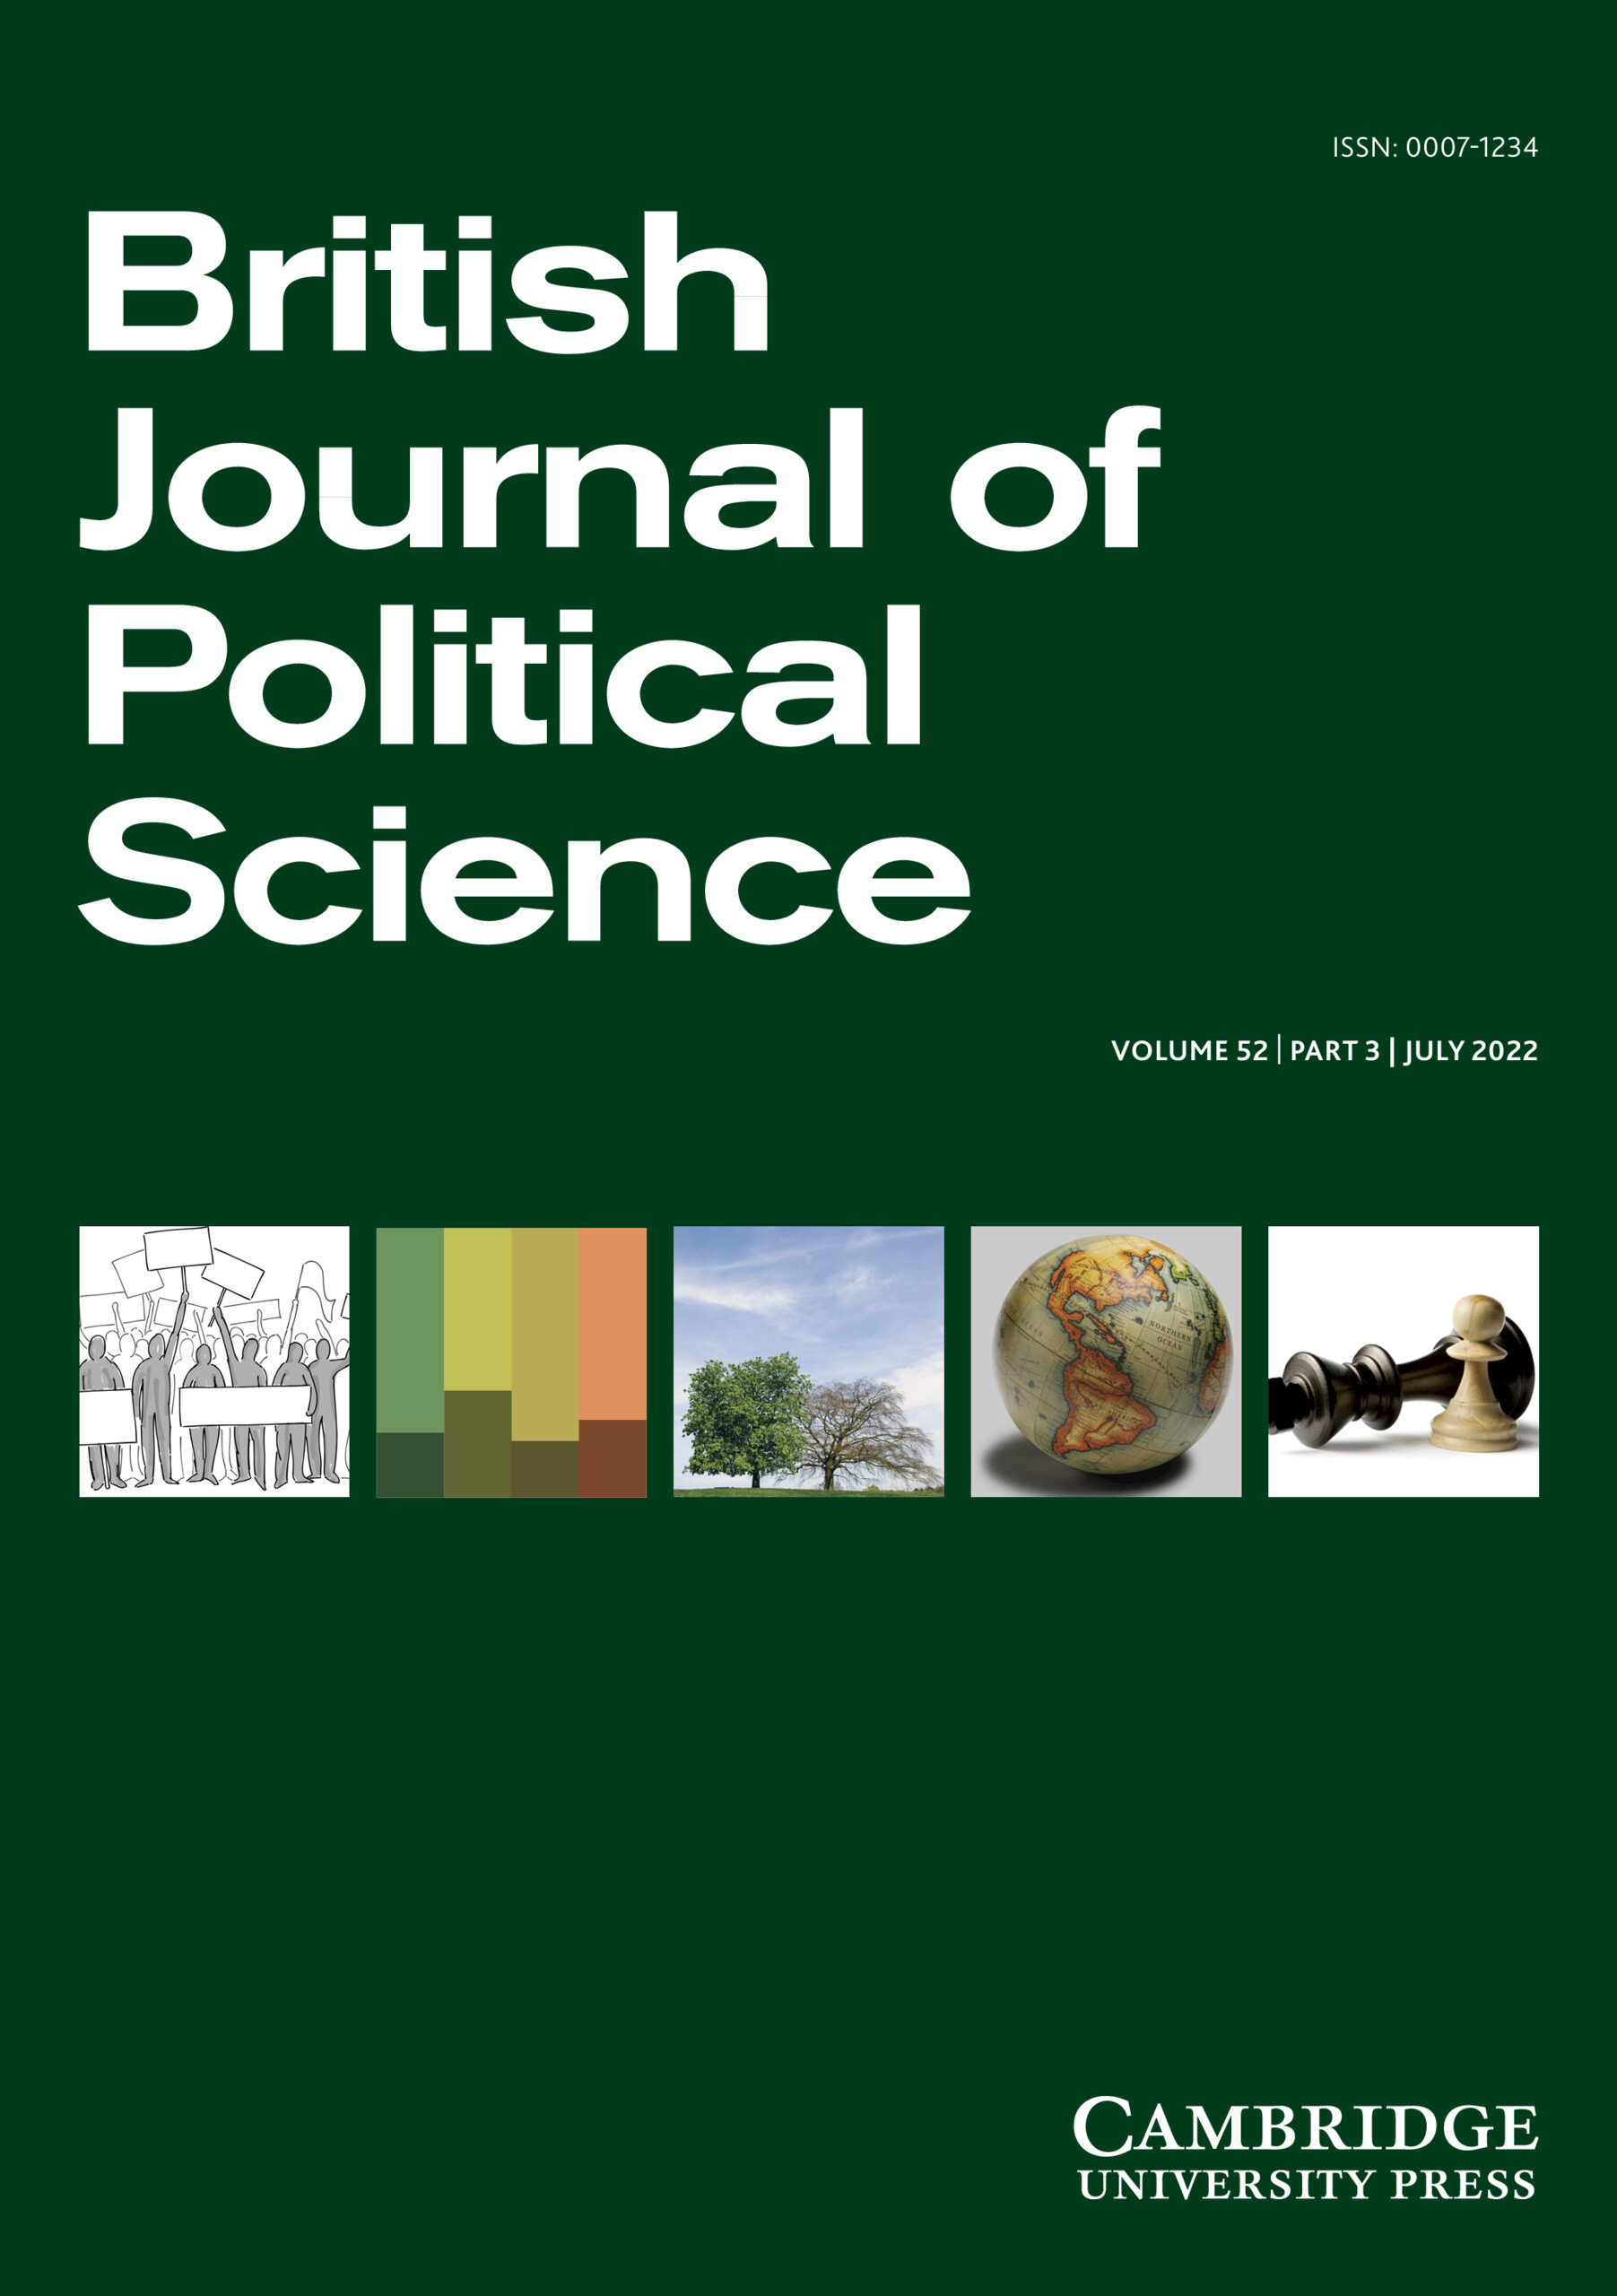 British Journal of Political Science cover